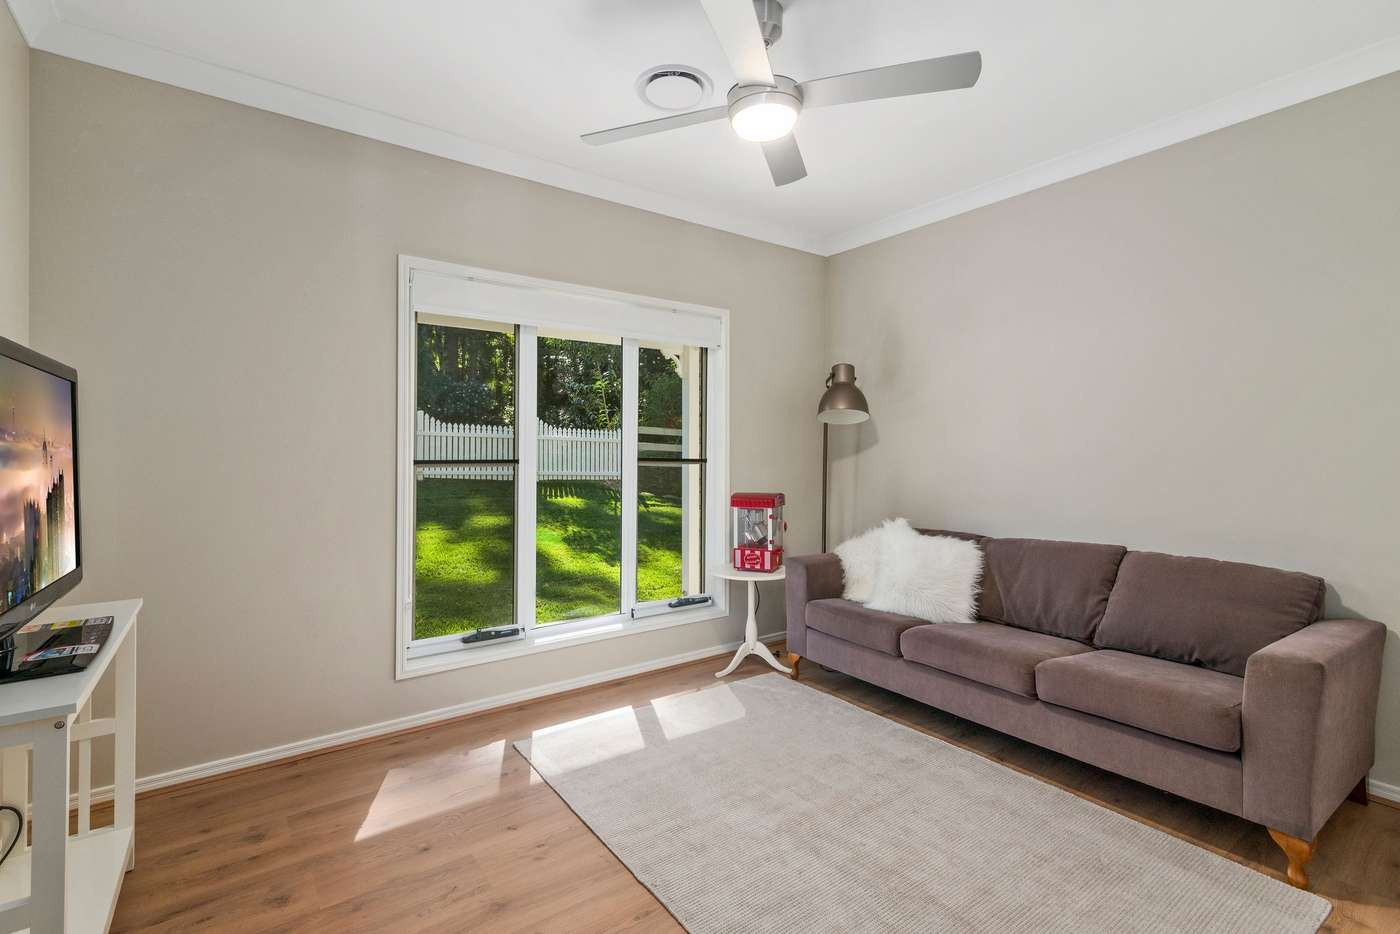 Sixth view of Homely house listing, 27 Bradman Drive, Currumbin Valley QLD 4223